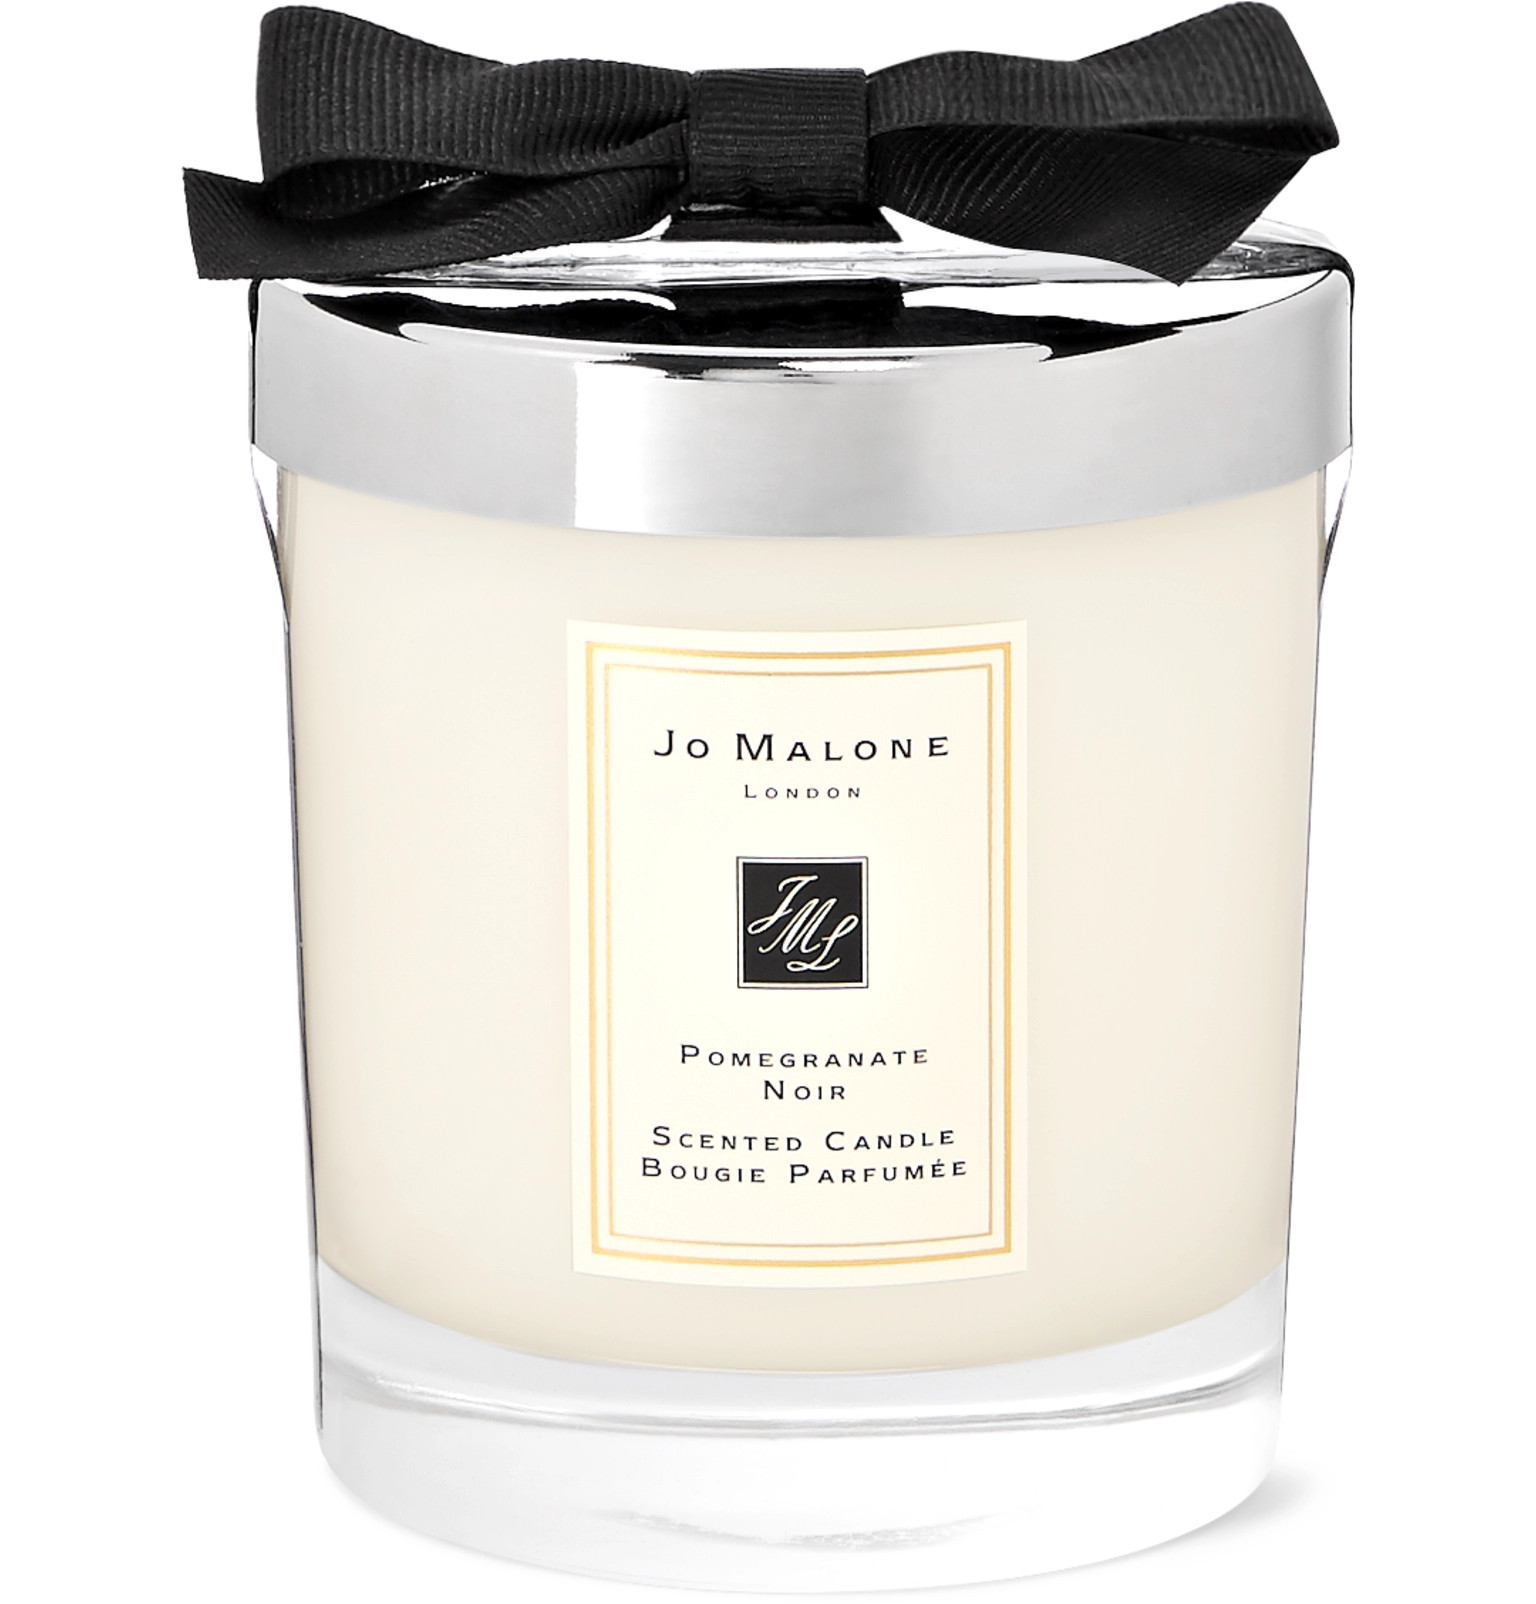 Jo Malone London Pomegranate Noir Scented Candle 200g